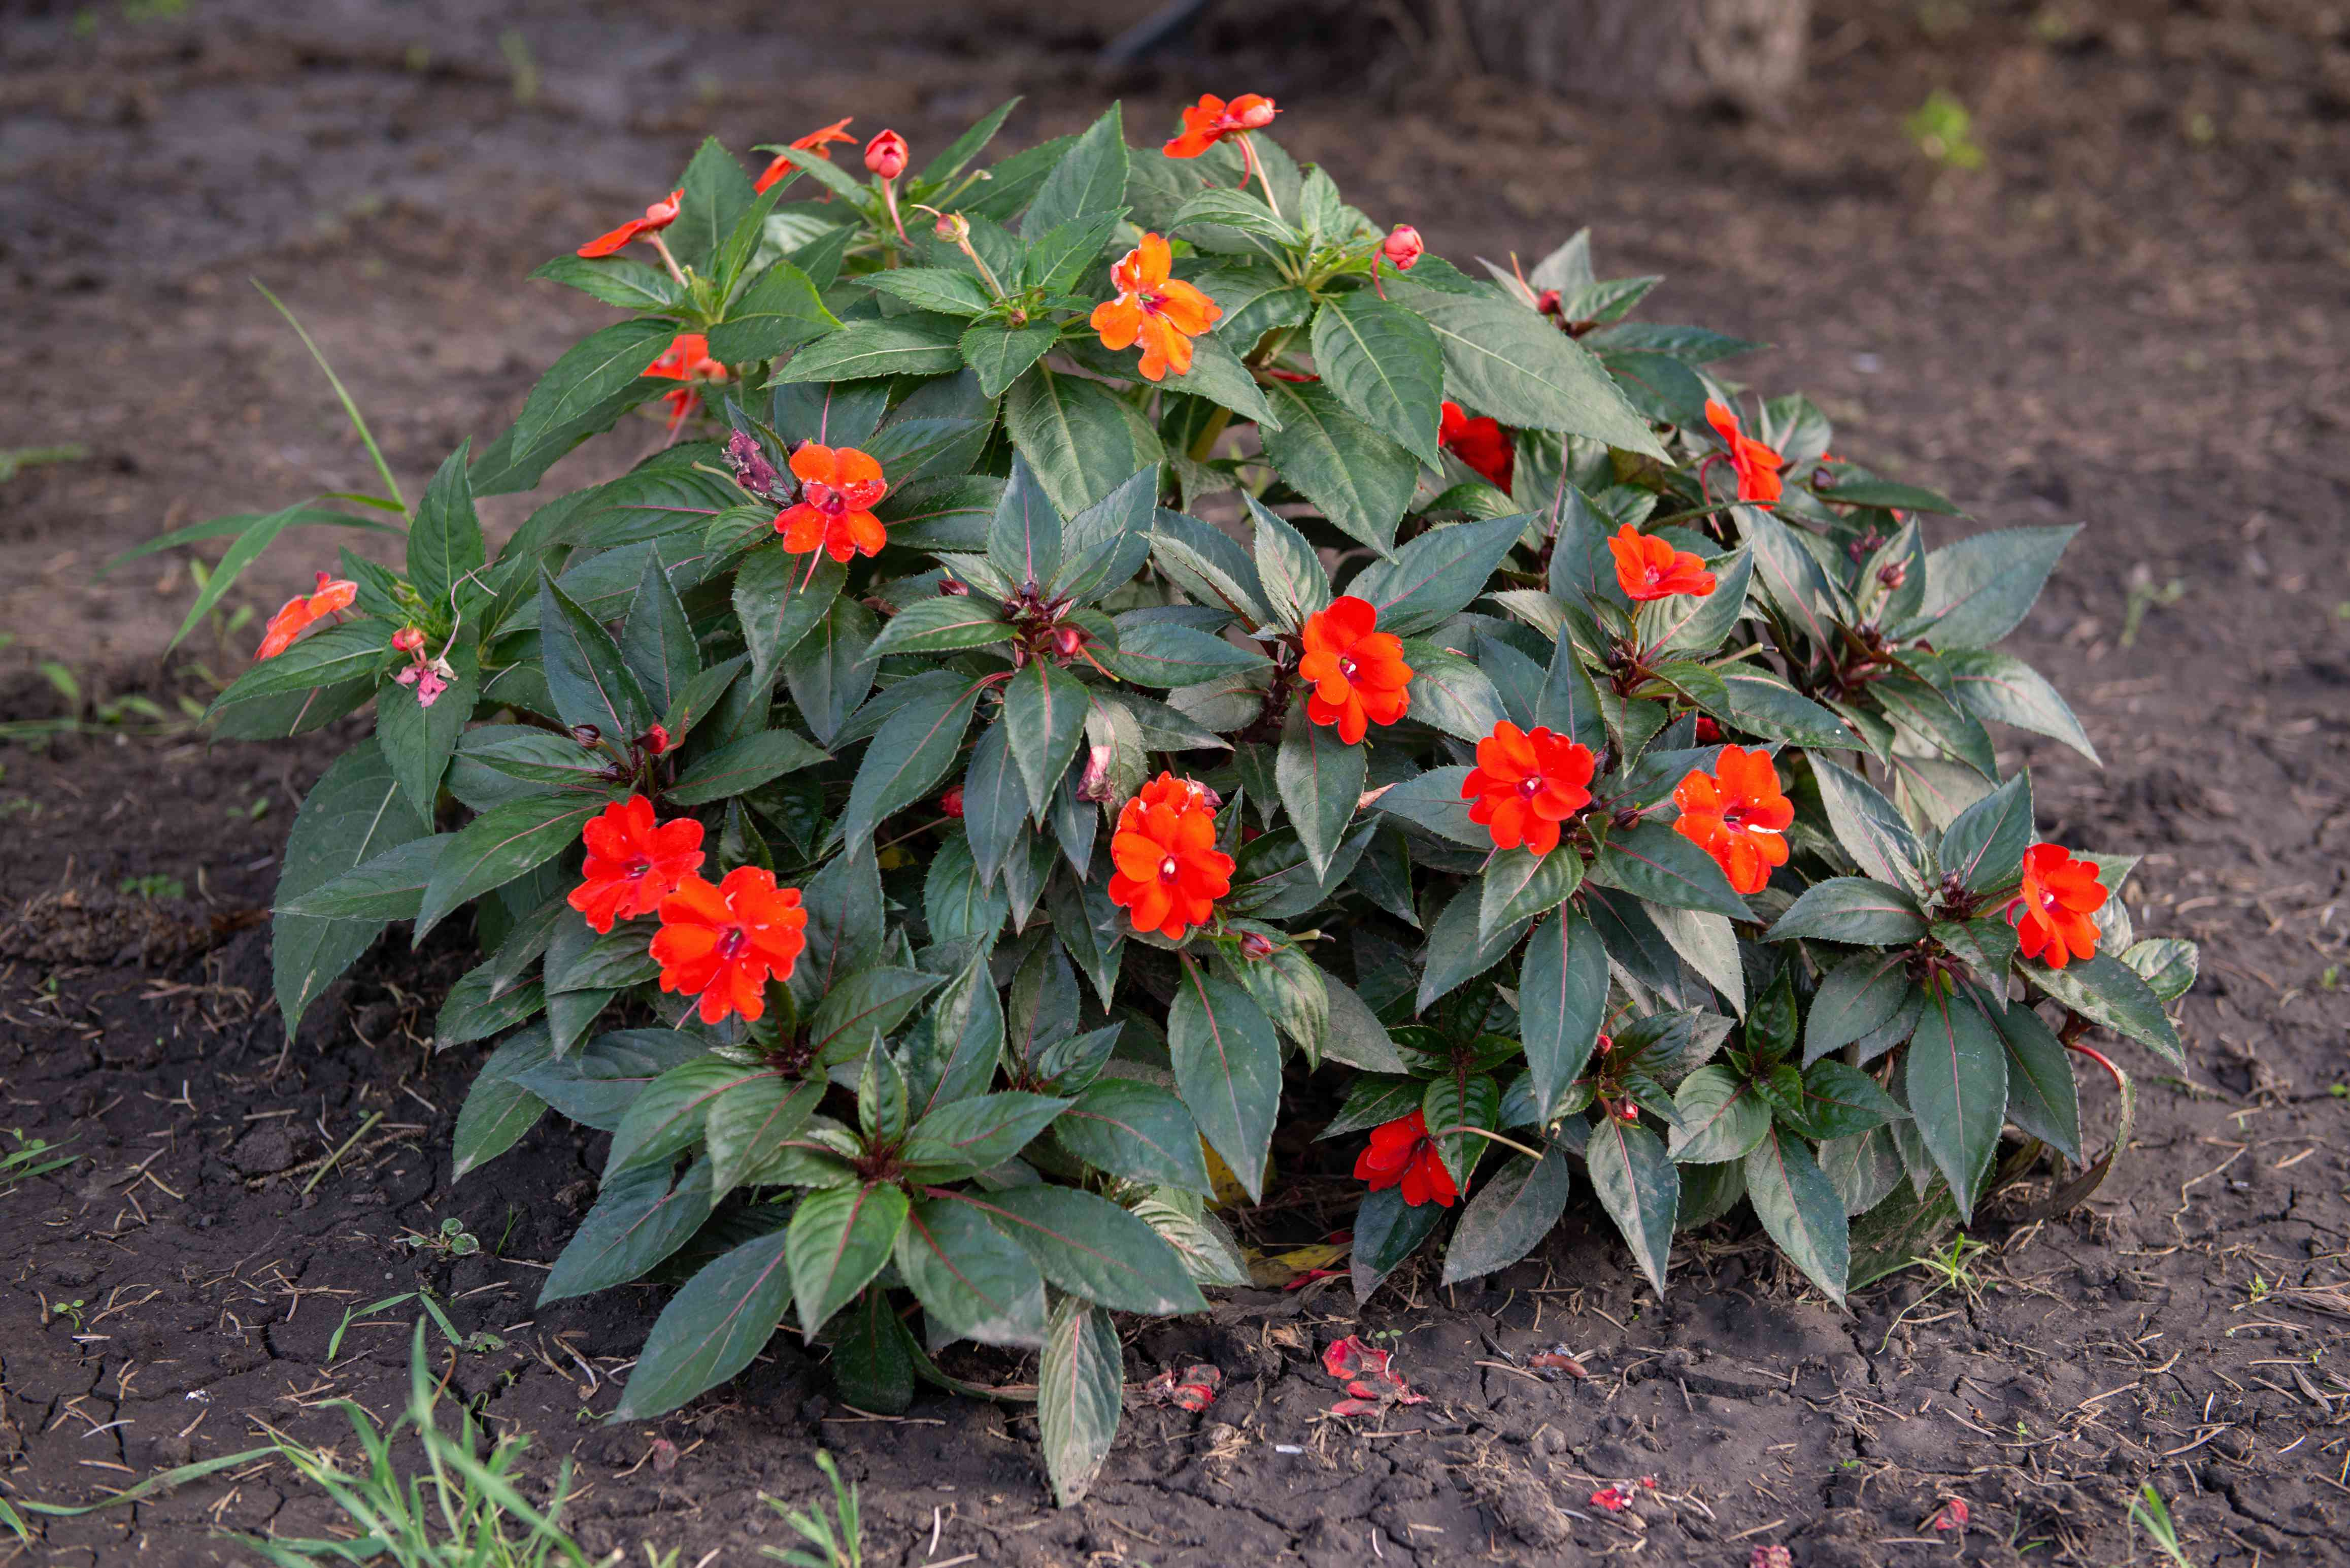 SunPatiens bush with bright red flowers and dark green leaves in middle of soil